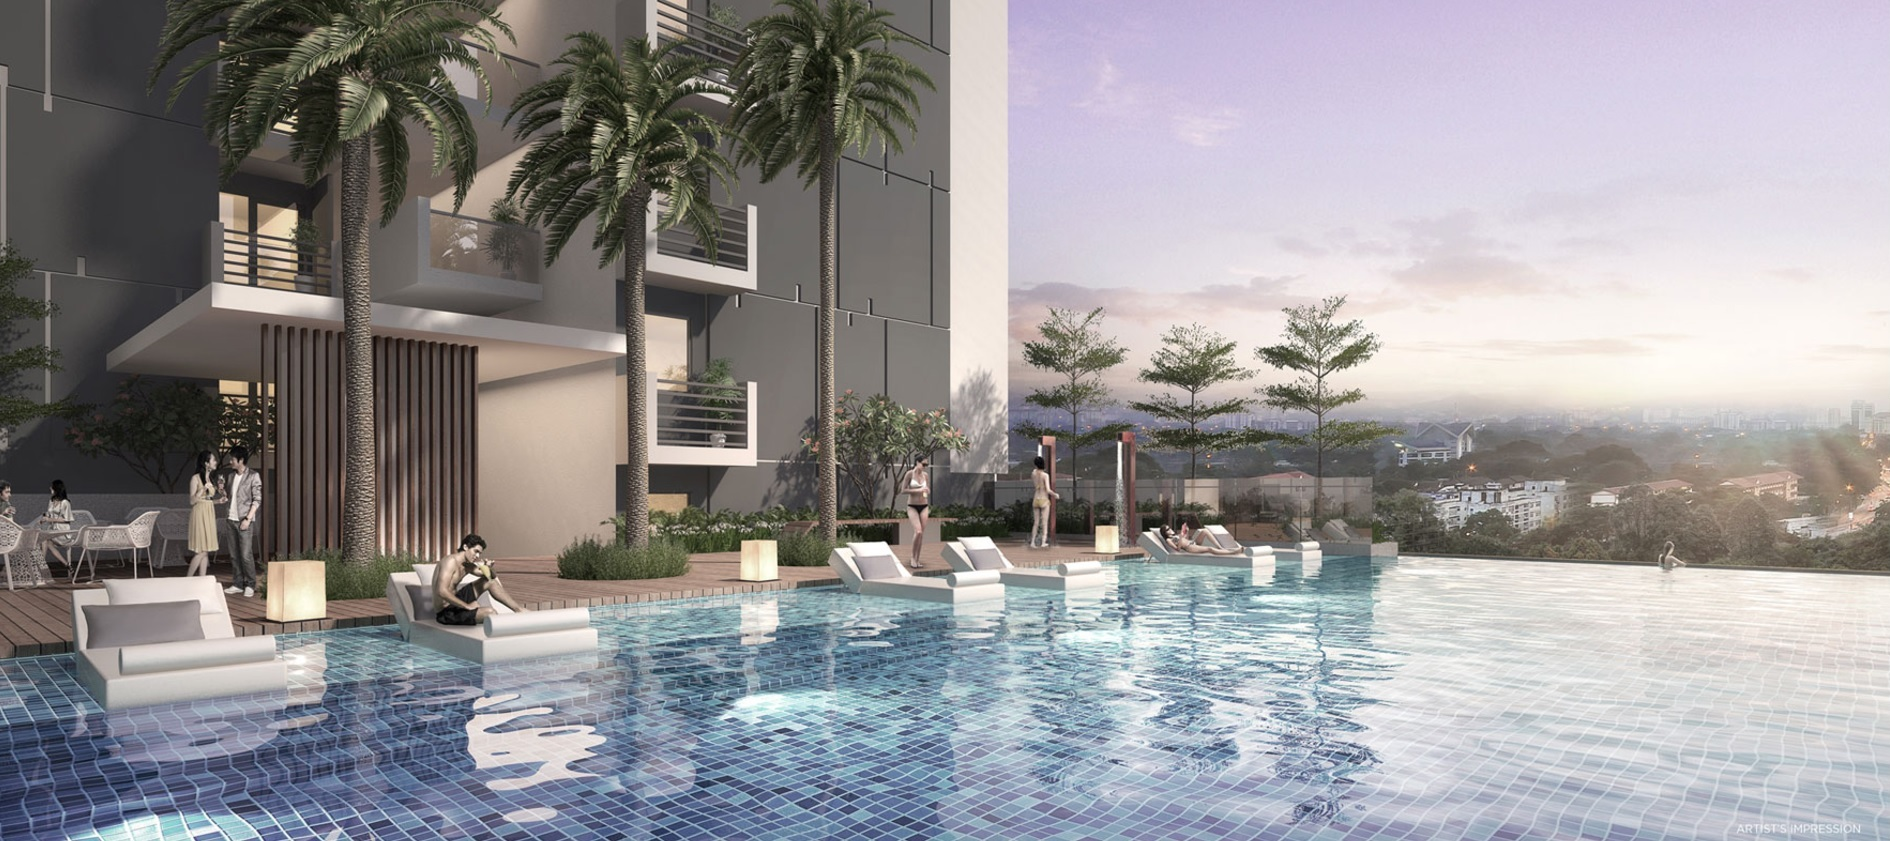 Oxley Convention City Swimming Pool